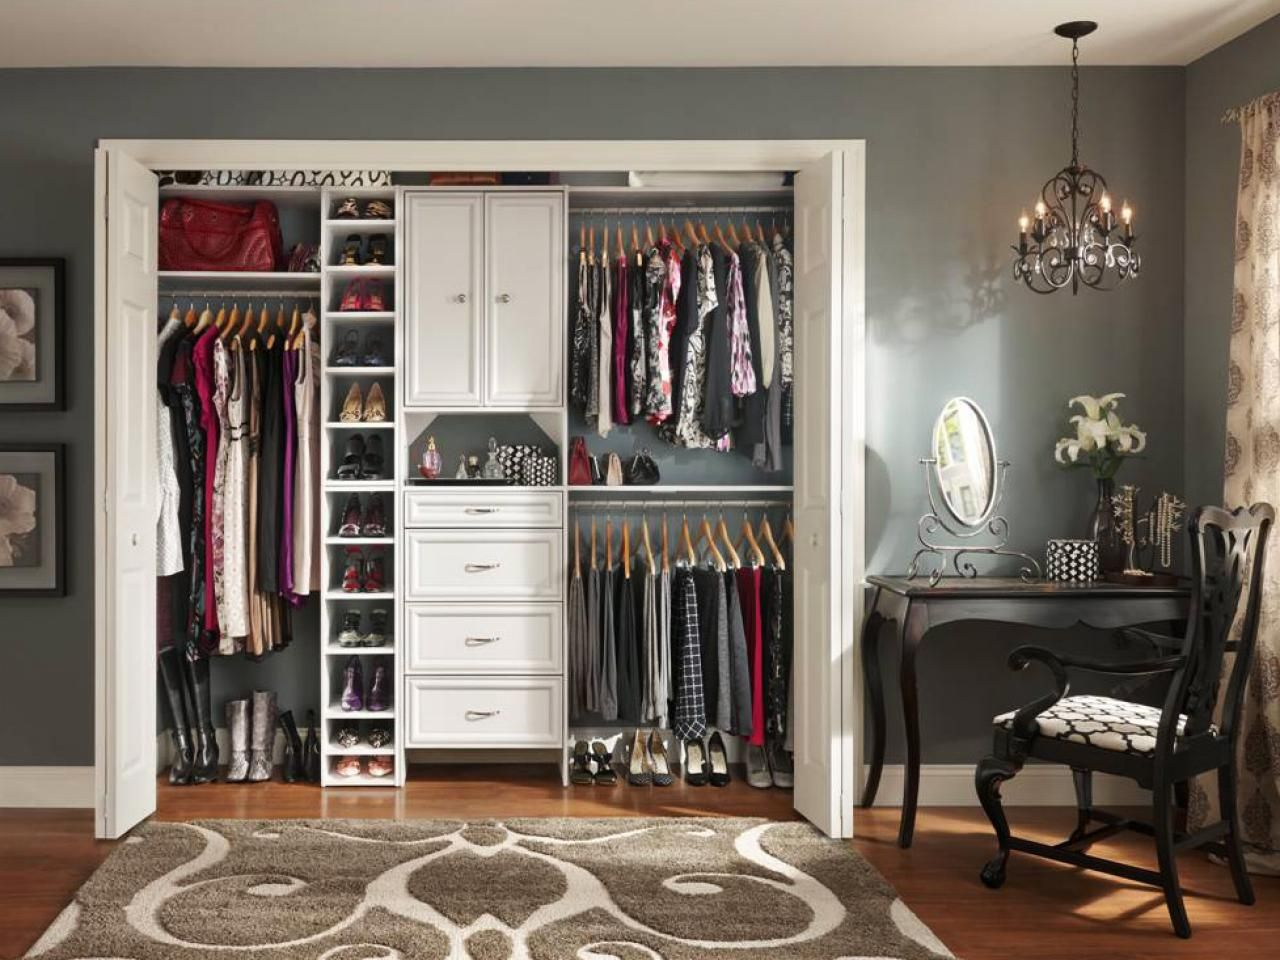 Small Closet Organization Ideas  Pictures  Options   Tips. 270 best Closet Organization images on Pinterest